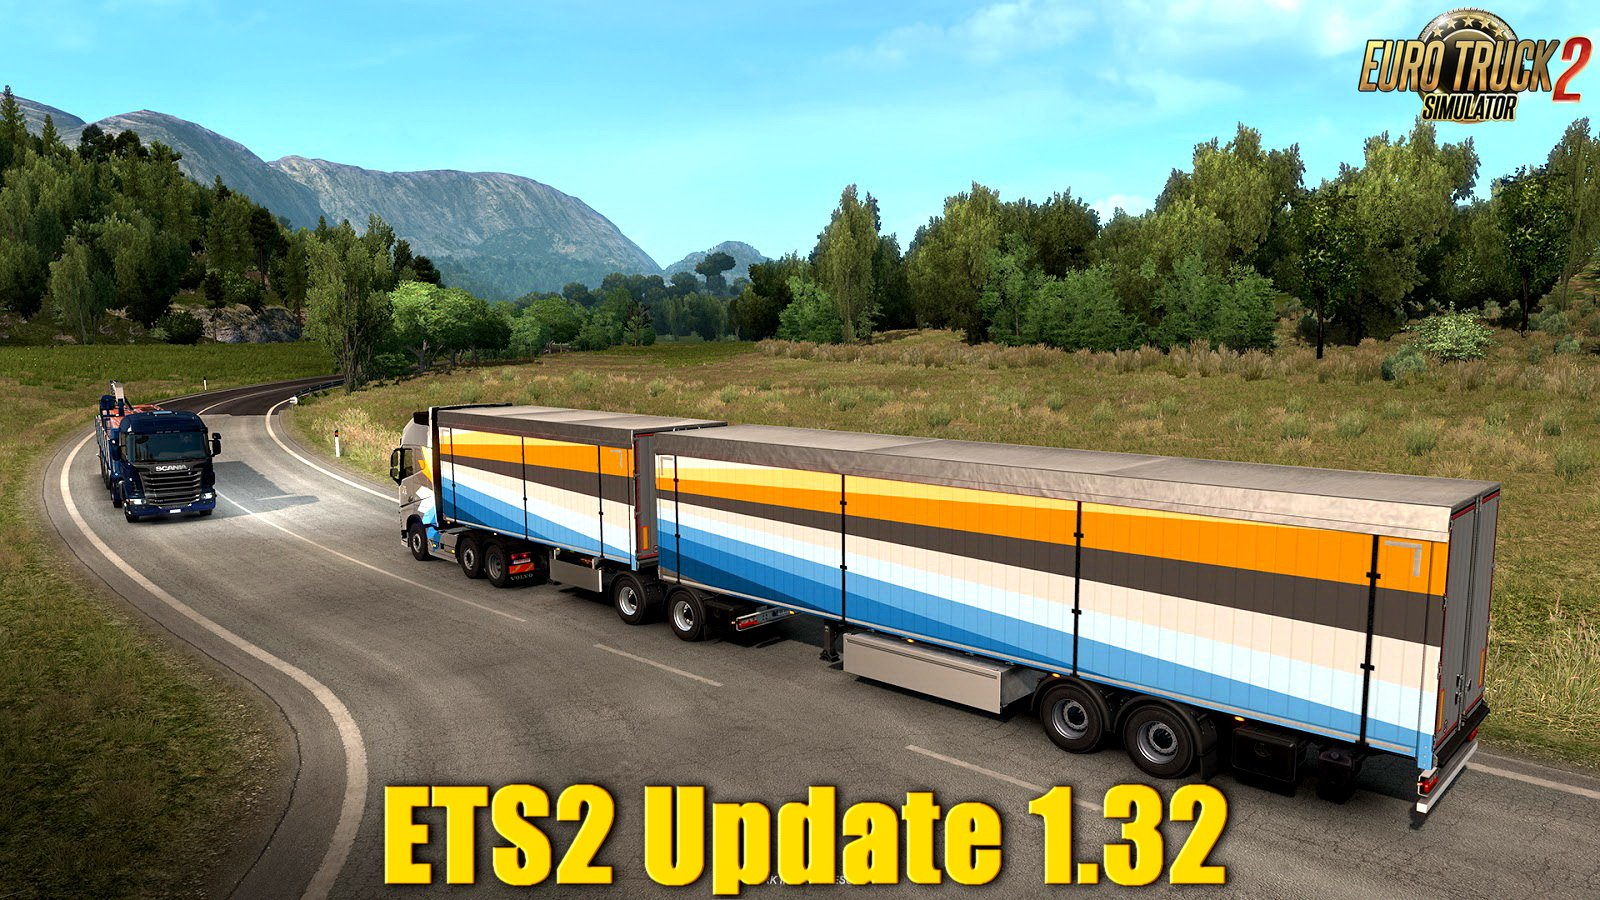 ETS2 Update 1.32 was released